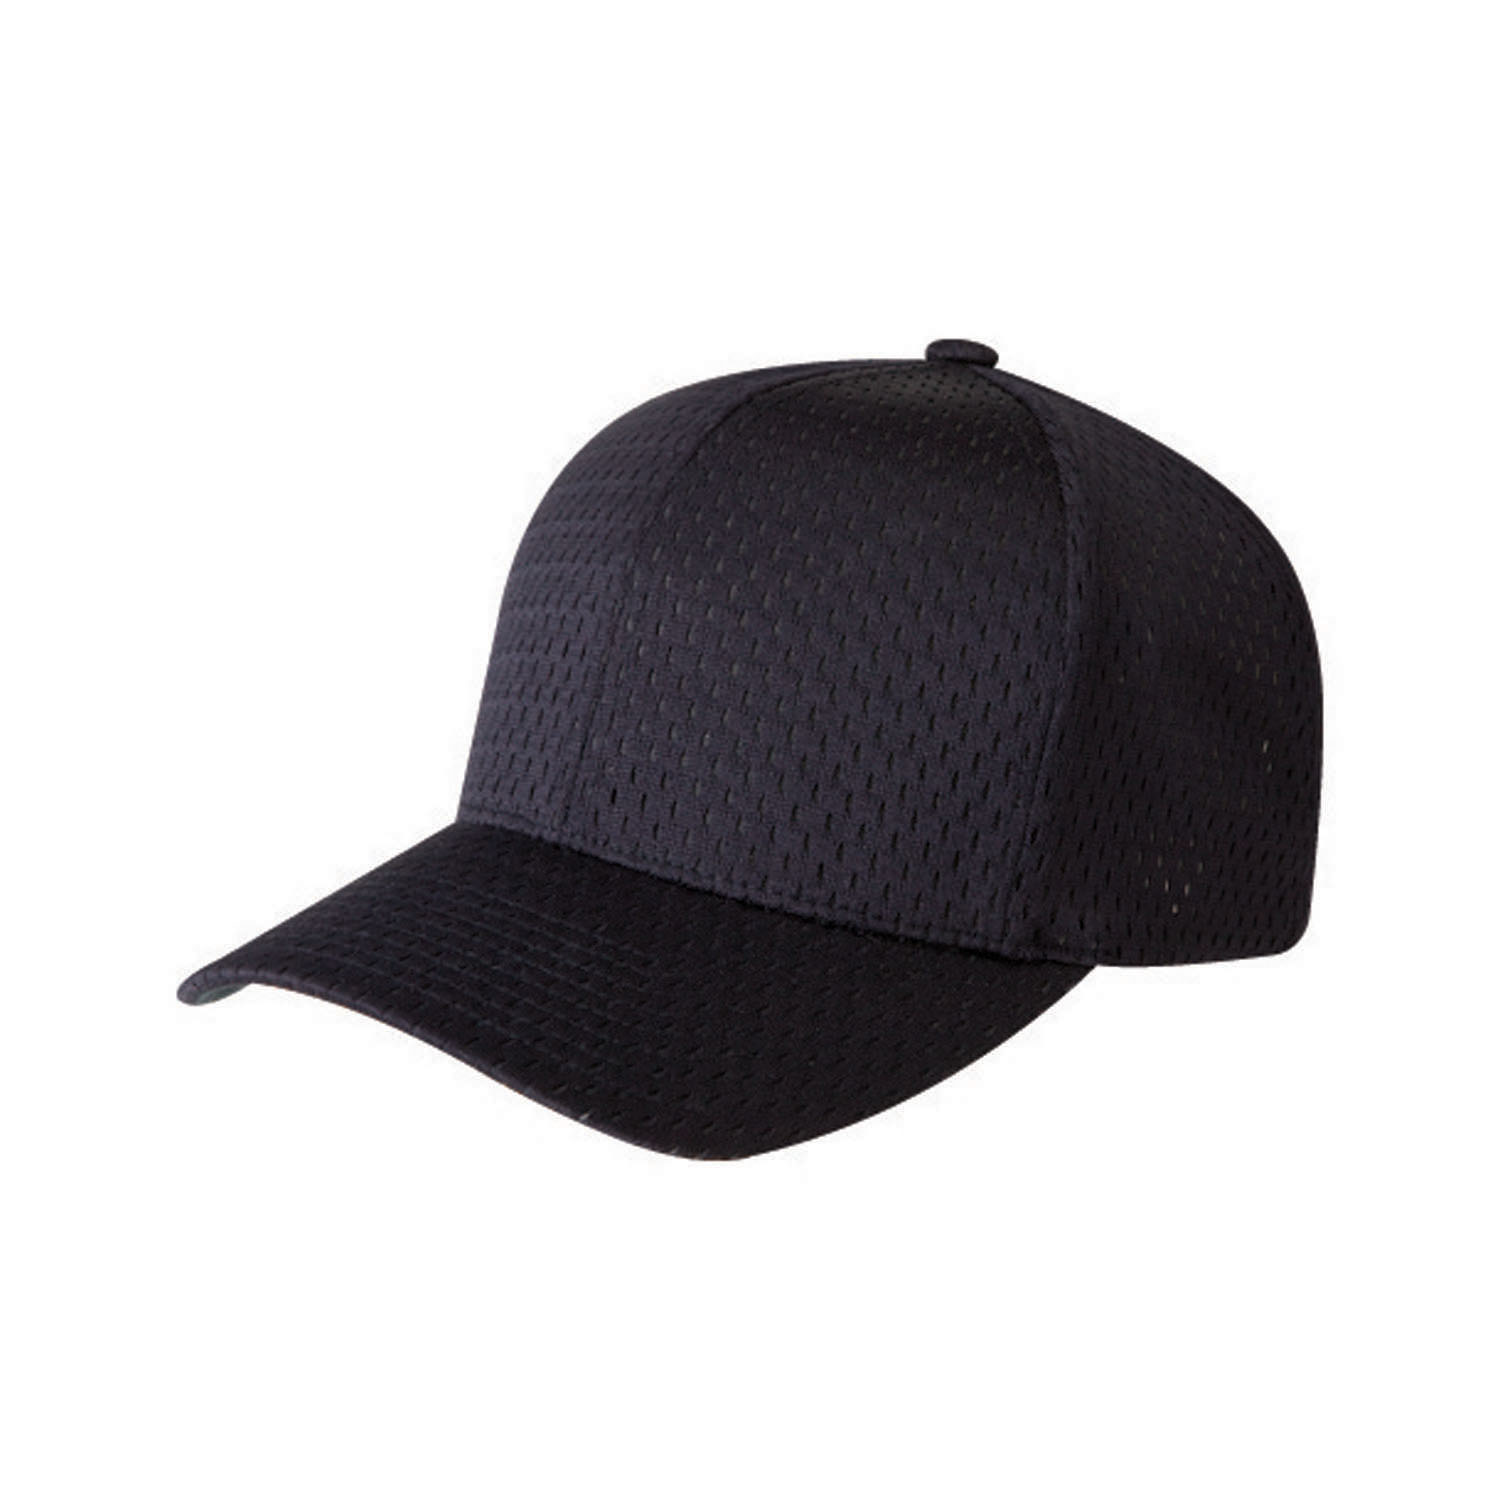 Flexfit Athletic Mesh Ballcap